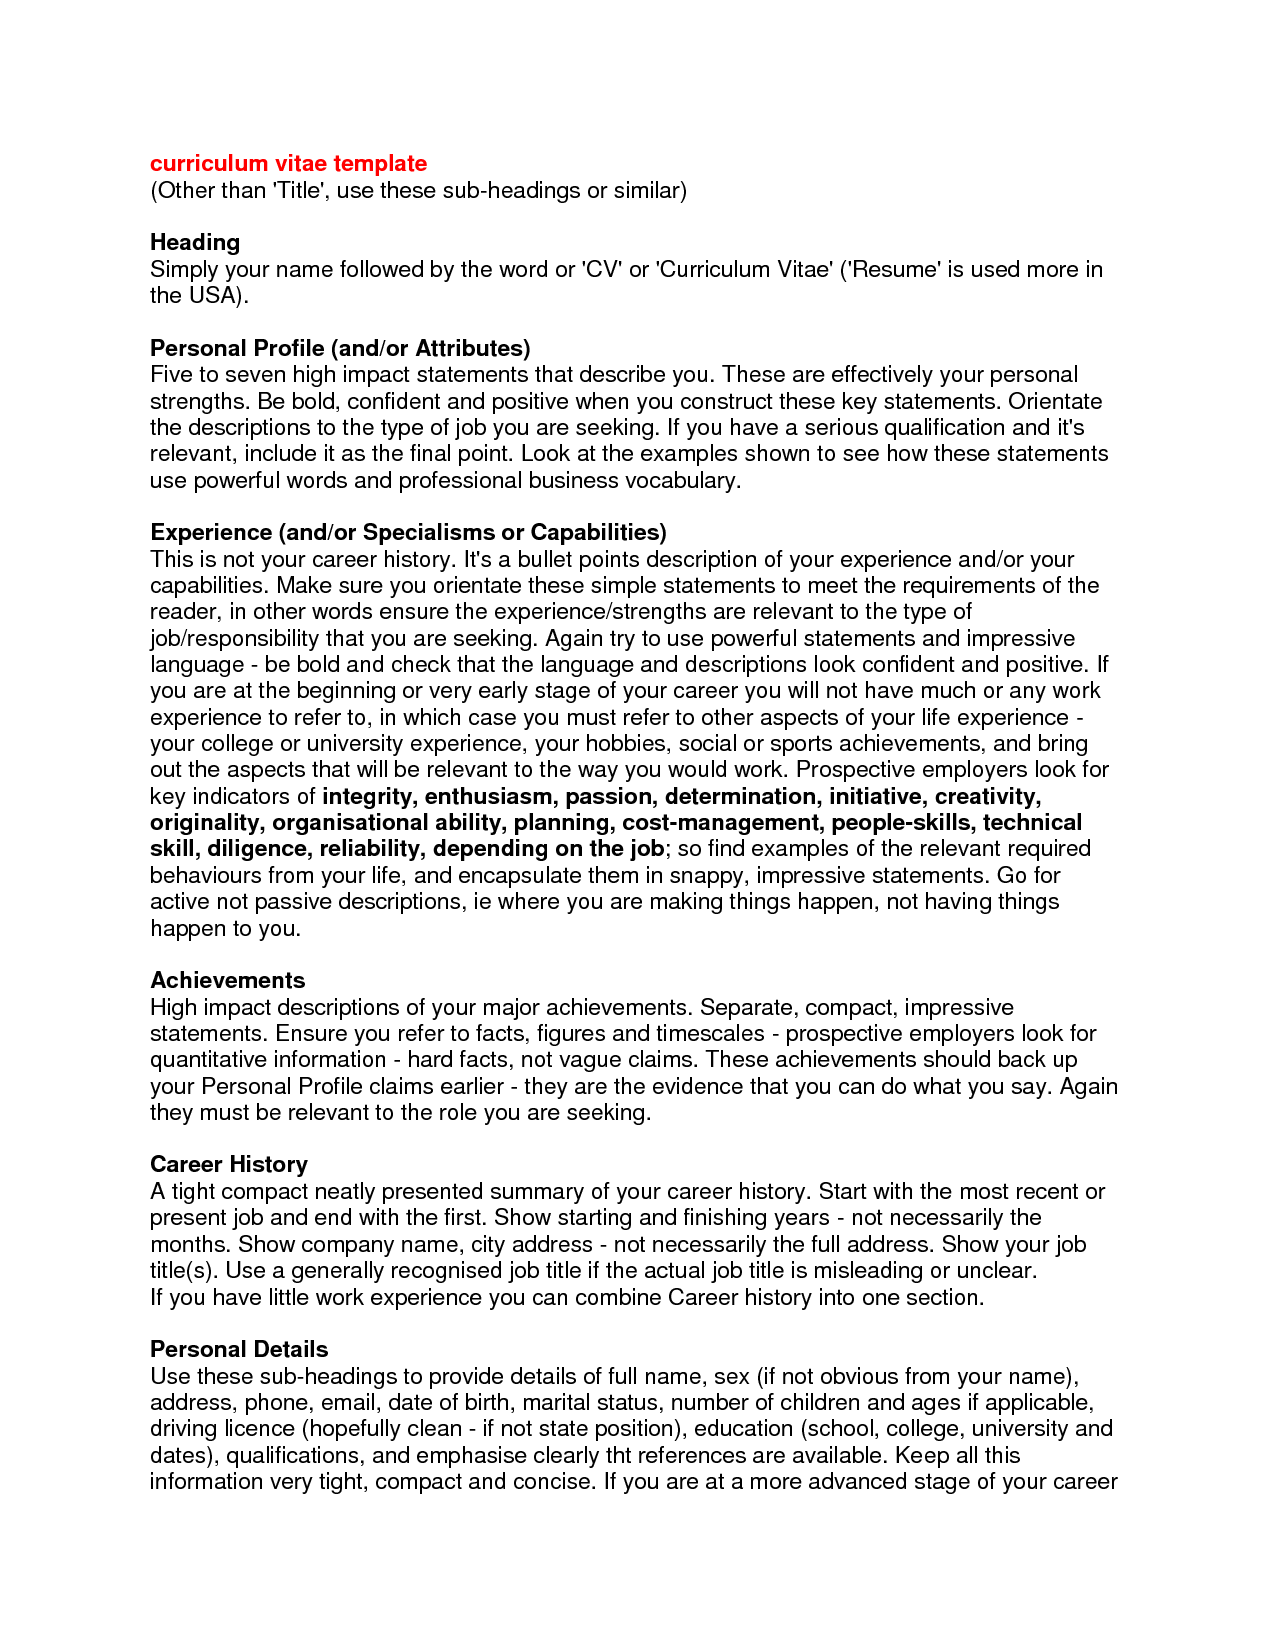 Curriculum Vitae Personal Statement Samples  HttpWww